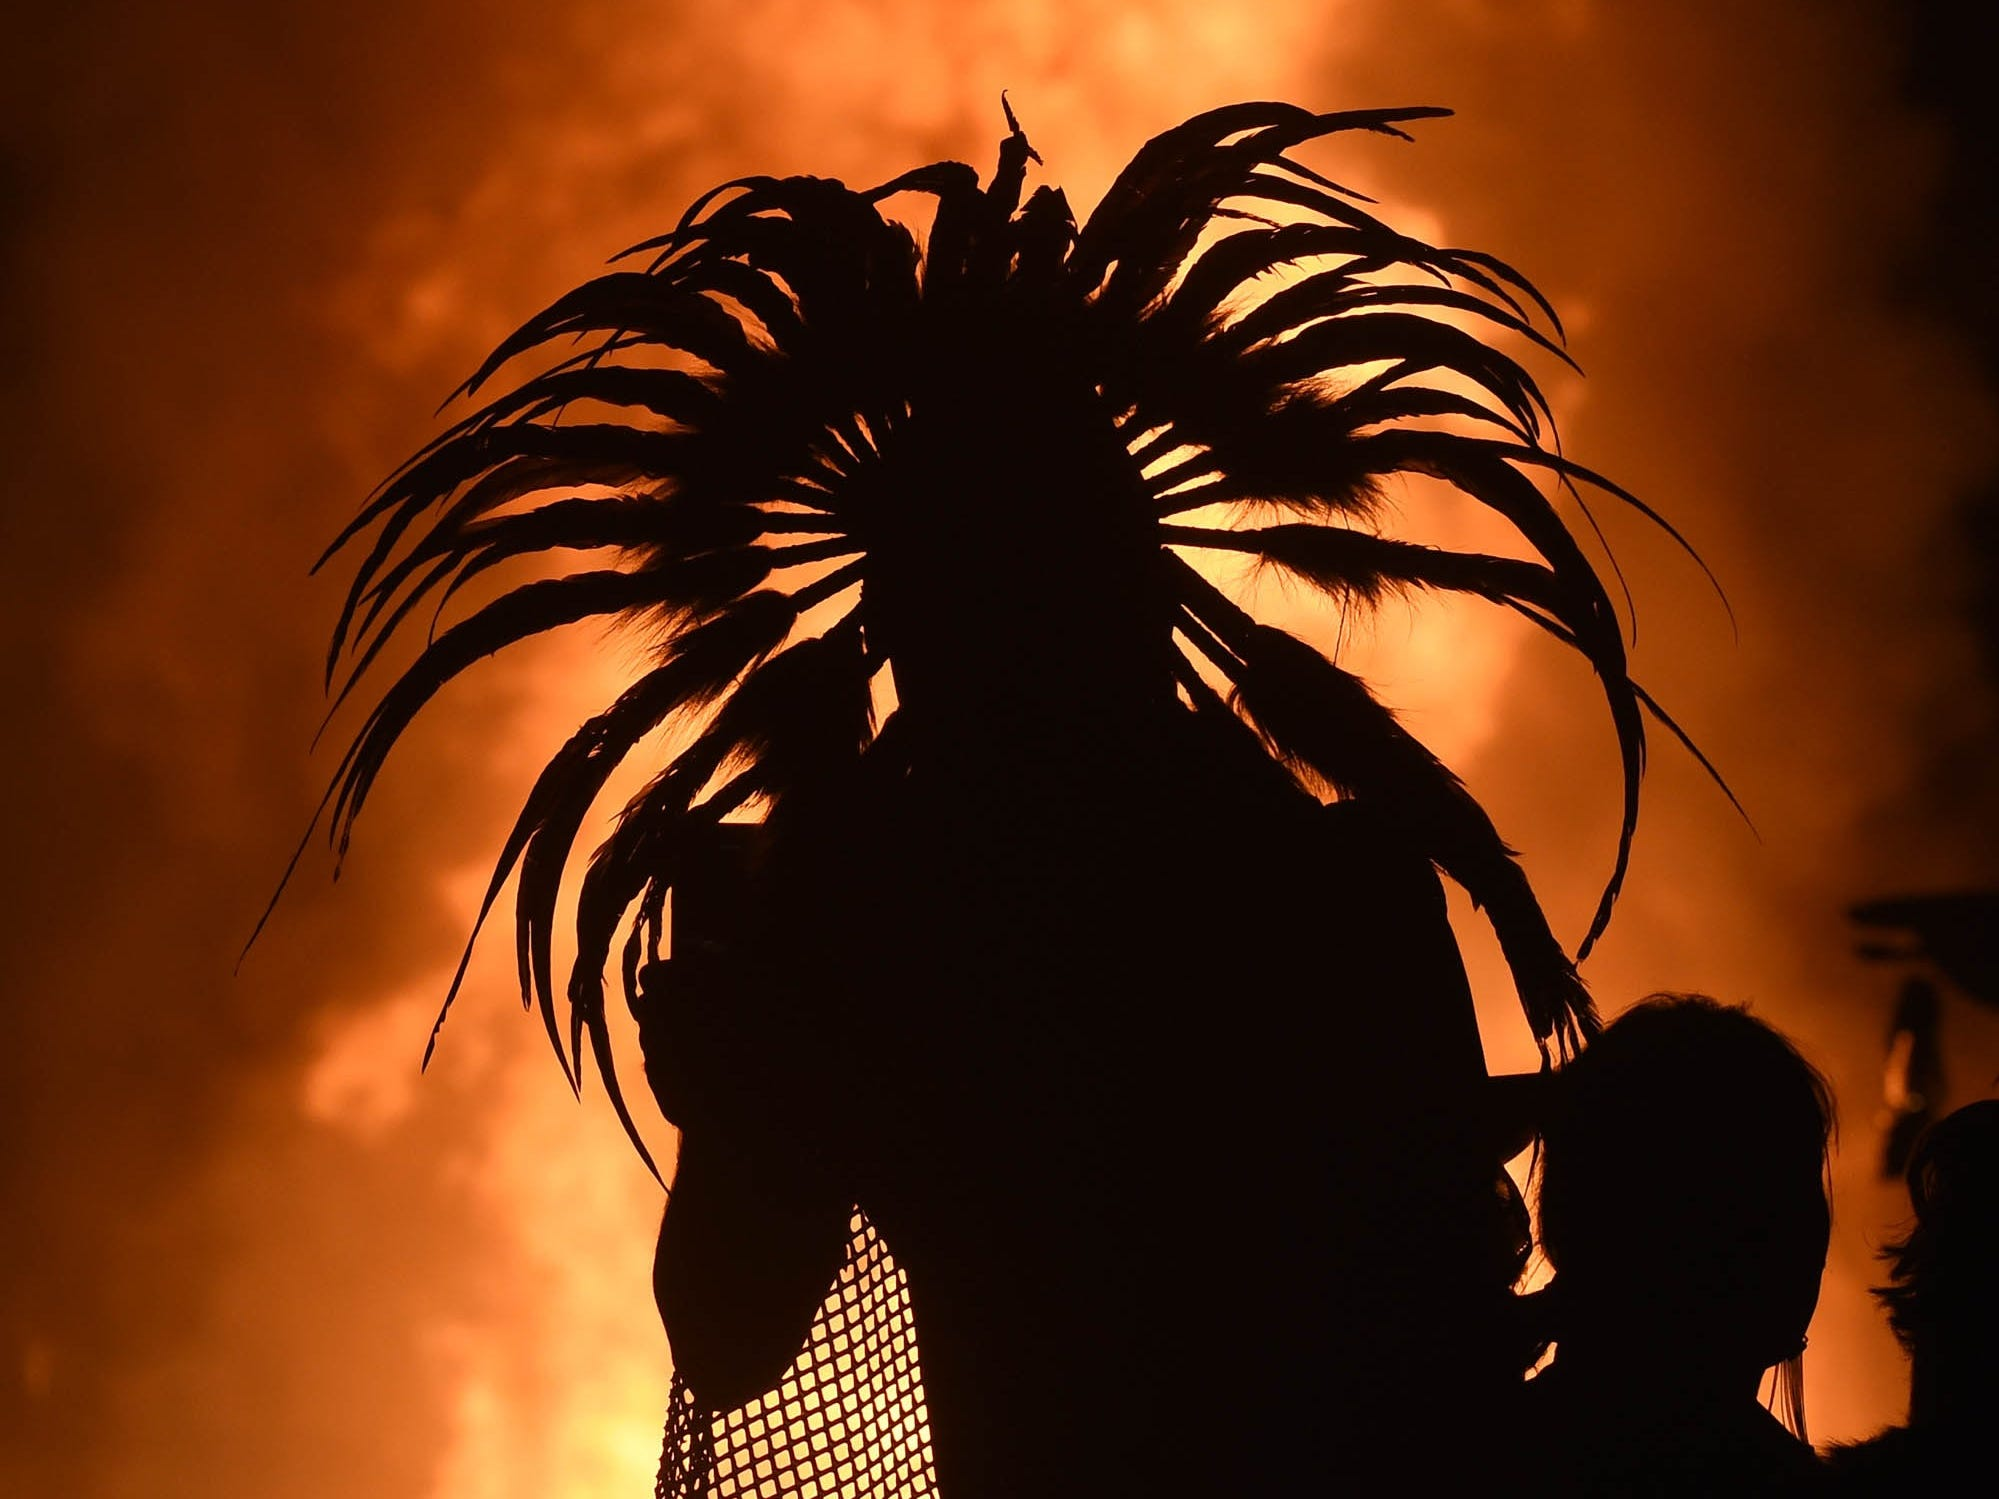 Tens of thousands of people gathered at the Burning Man festival to watch the the nearly 100-foot towering effigy of the Man burst into flames and collapse to the ground. After 30 minutes of fire performers, a spectacular fireworks display set the Man ablaze -- one of the most-anticipated events at the week-long pop-up city in the Nevada desert.